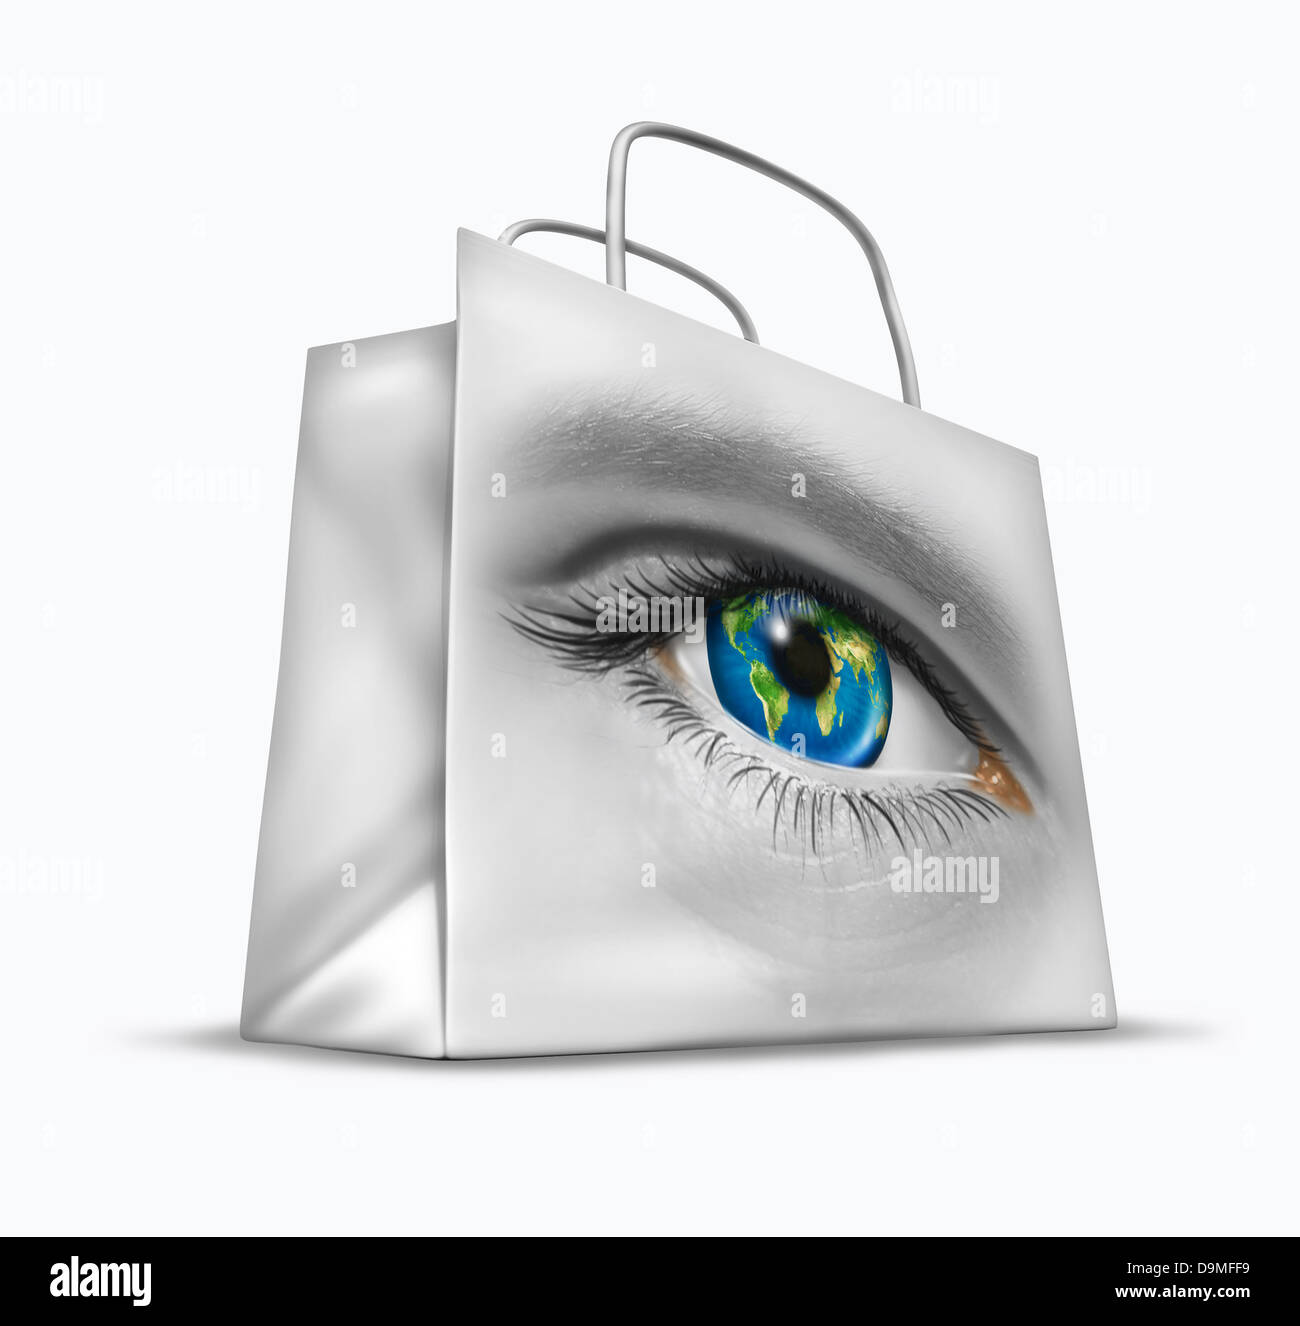 Global buyer in world trade and international commerce as a business symbol of searching for the best exports and - Stock Image